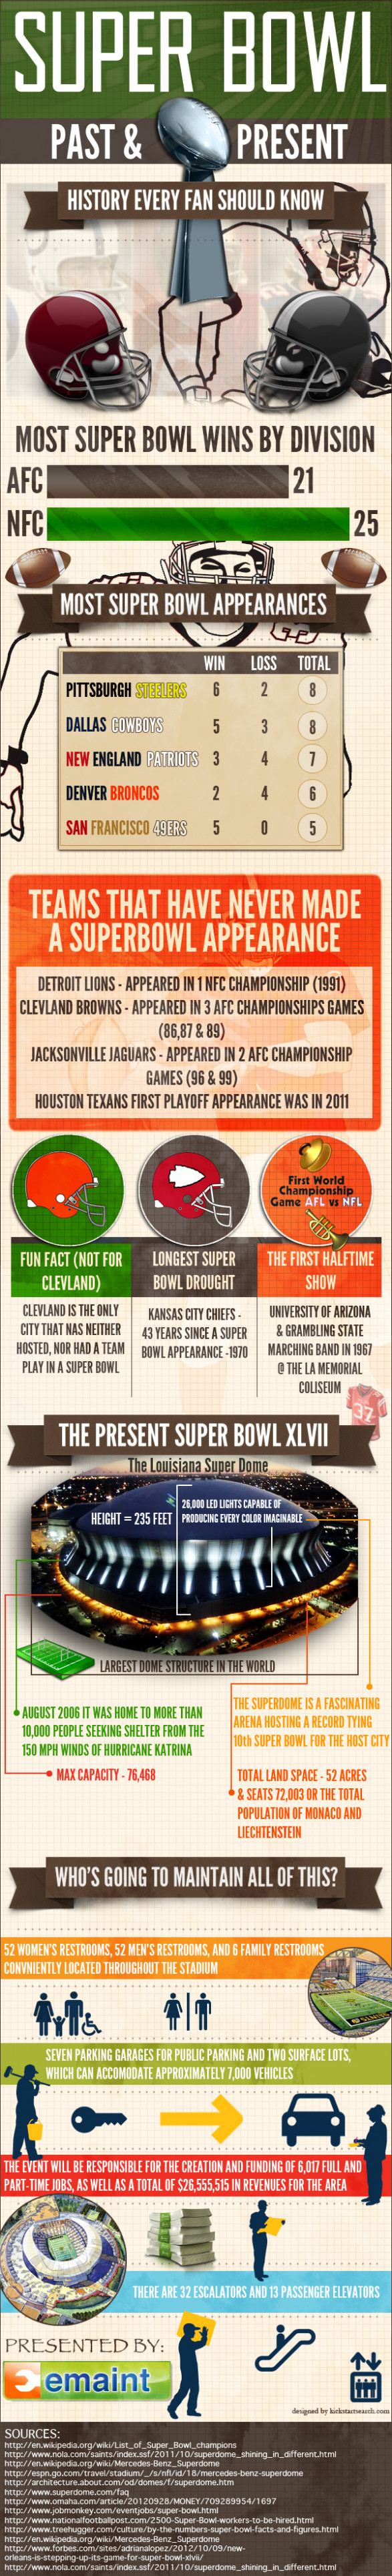 Super Bowl Past & Present